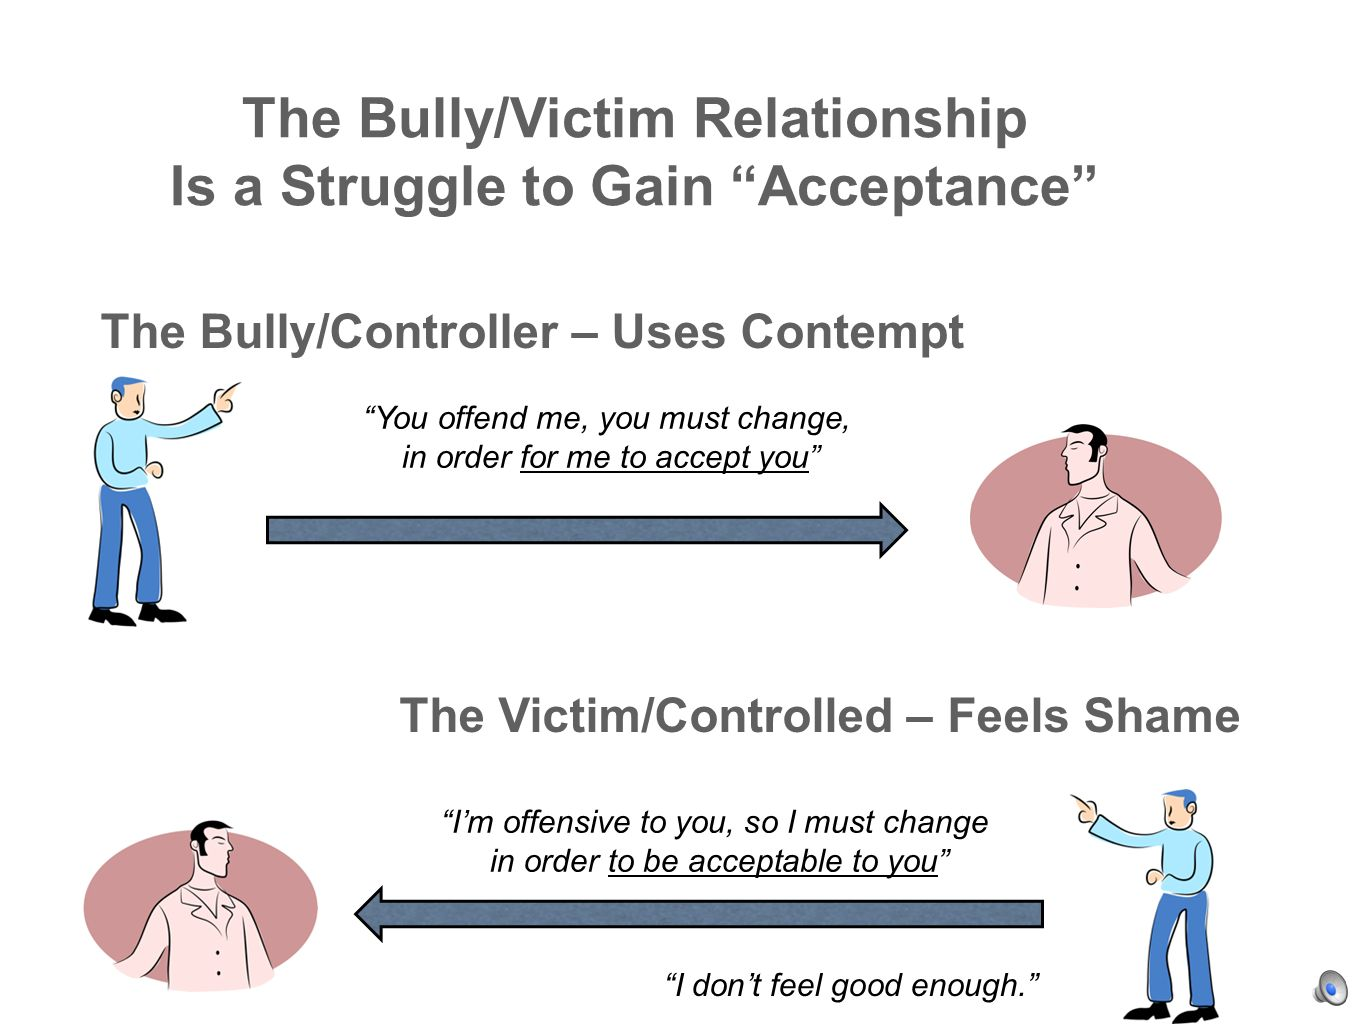 The Bully/Victim Relationship Is a Struggle to Gain Acceptance You offend me, you must change, in order for me to accept you Im offensive to you, so I must change in order to be acceptable to you The Victim/Controlled – Feels Shame The Bully/Controller – Uses Contempt I dont feel good enough.